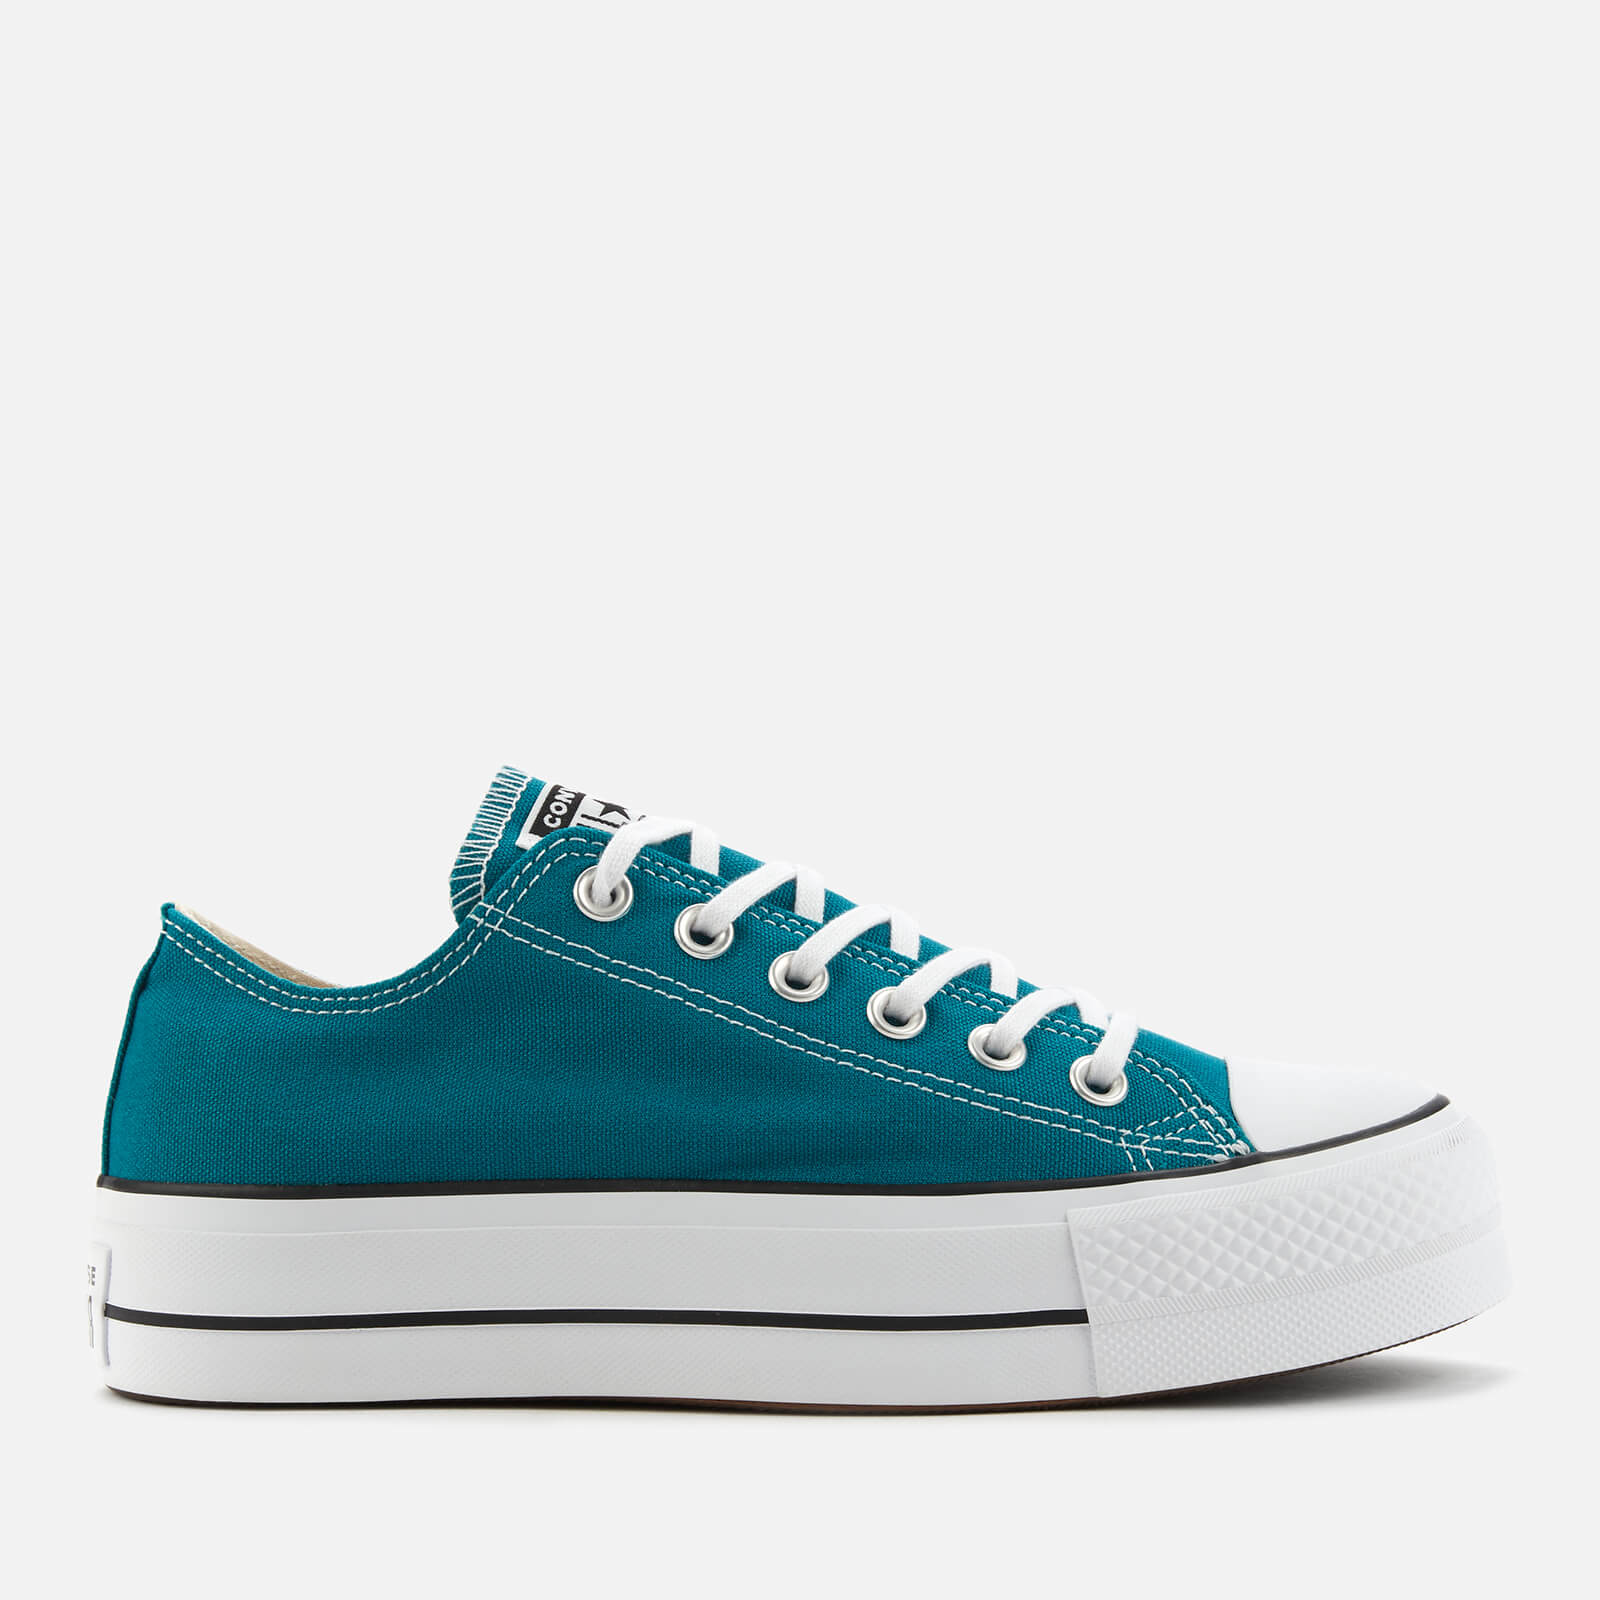 Converse Women's Chuck Taylor All Star Lift Ox Trainers - Bright Spruce - UK 3